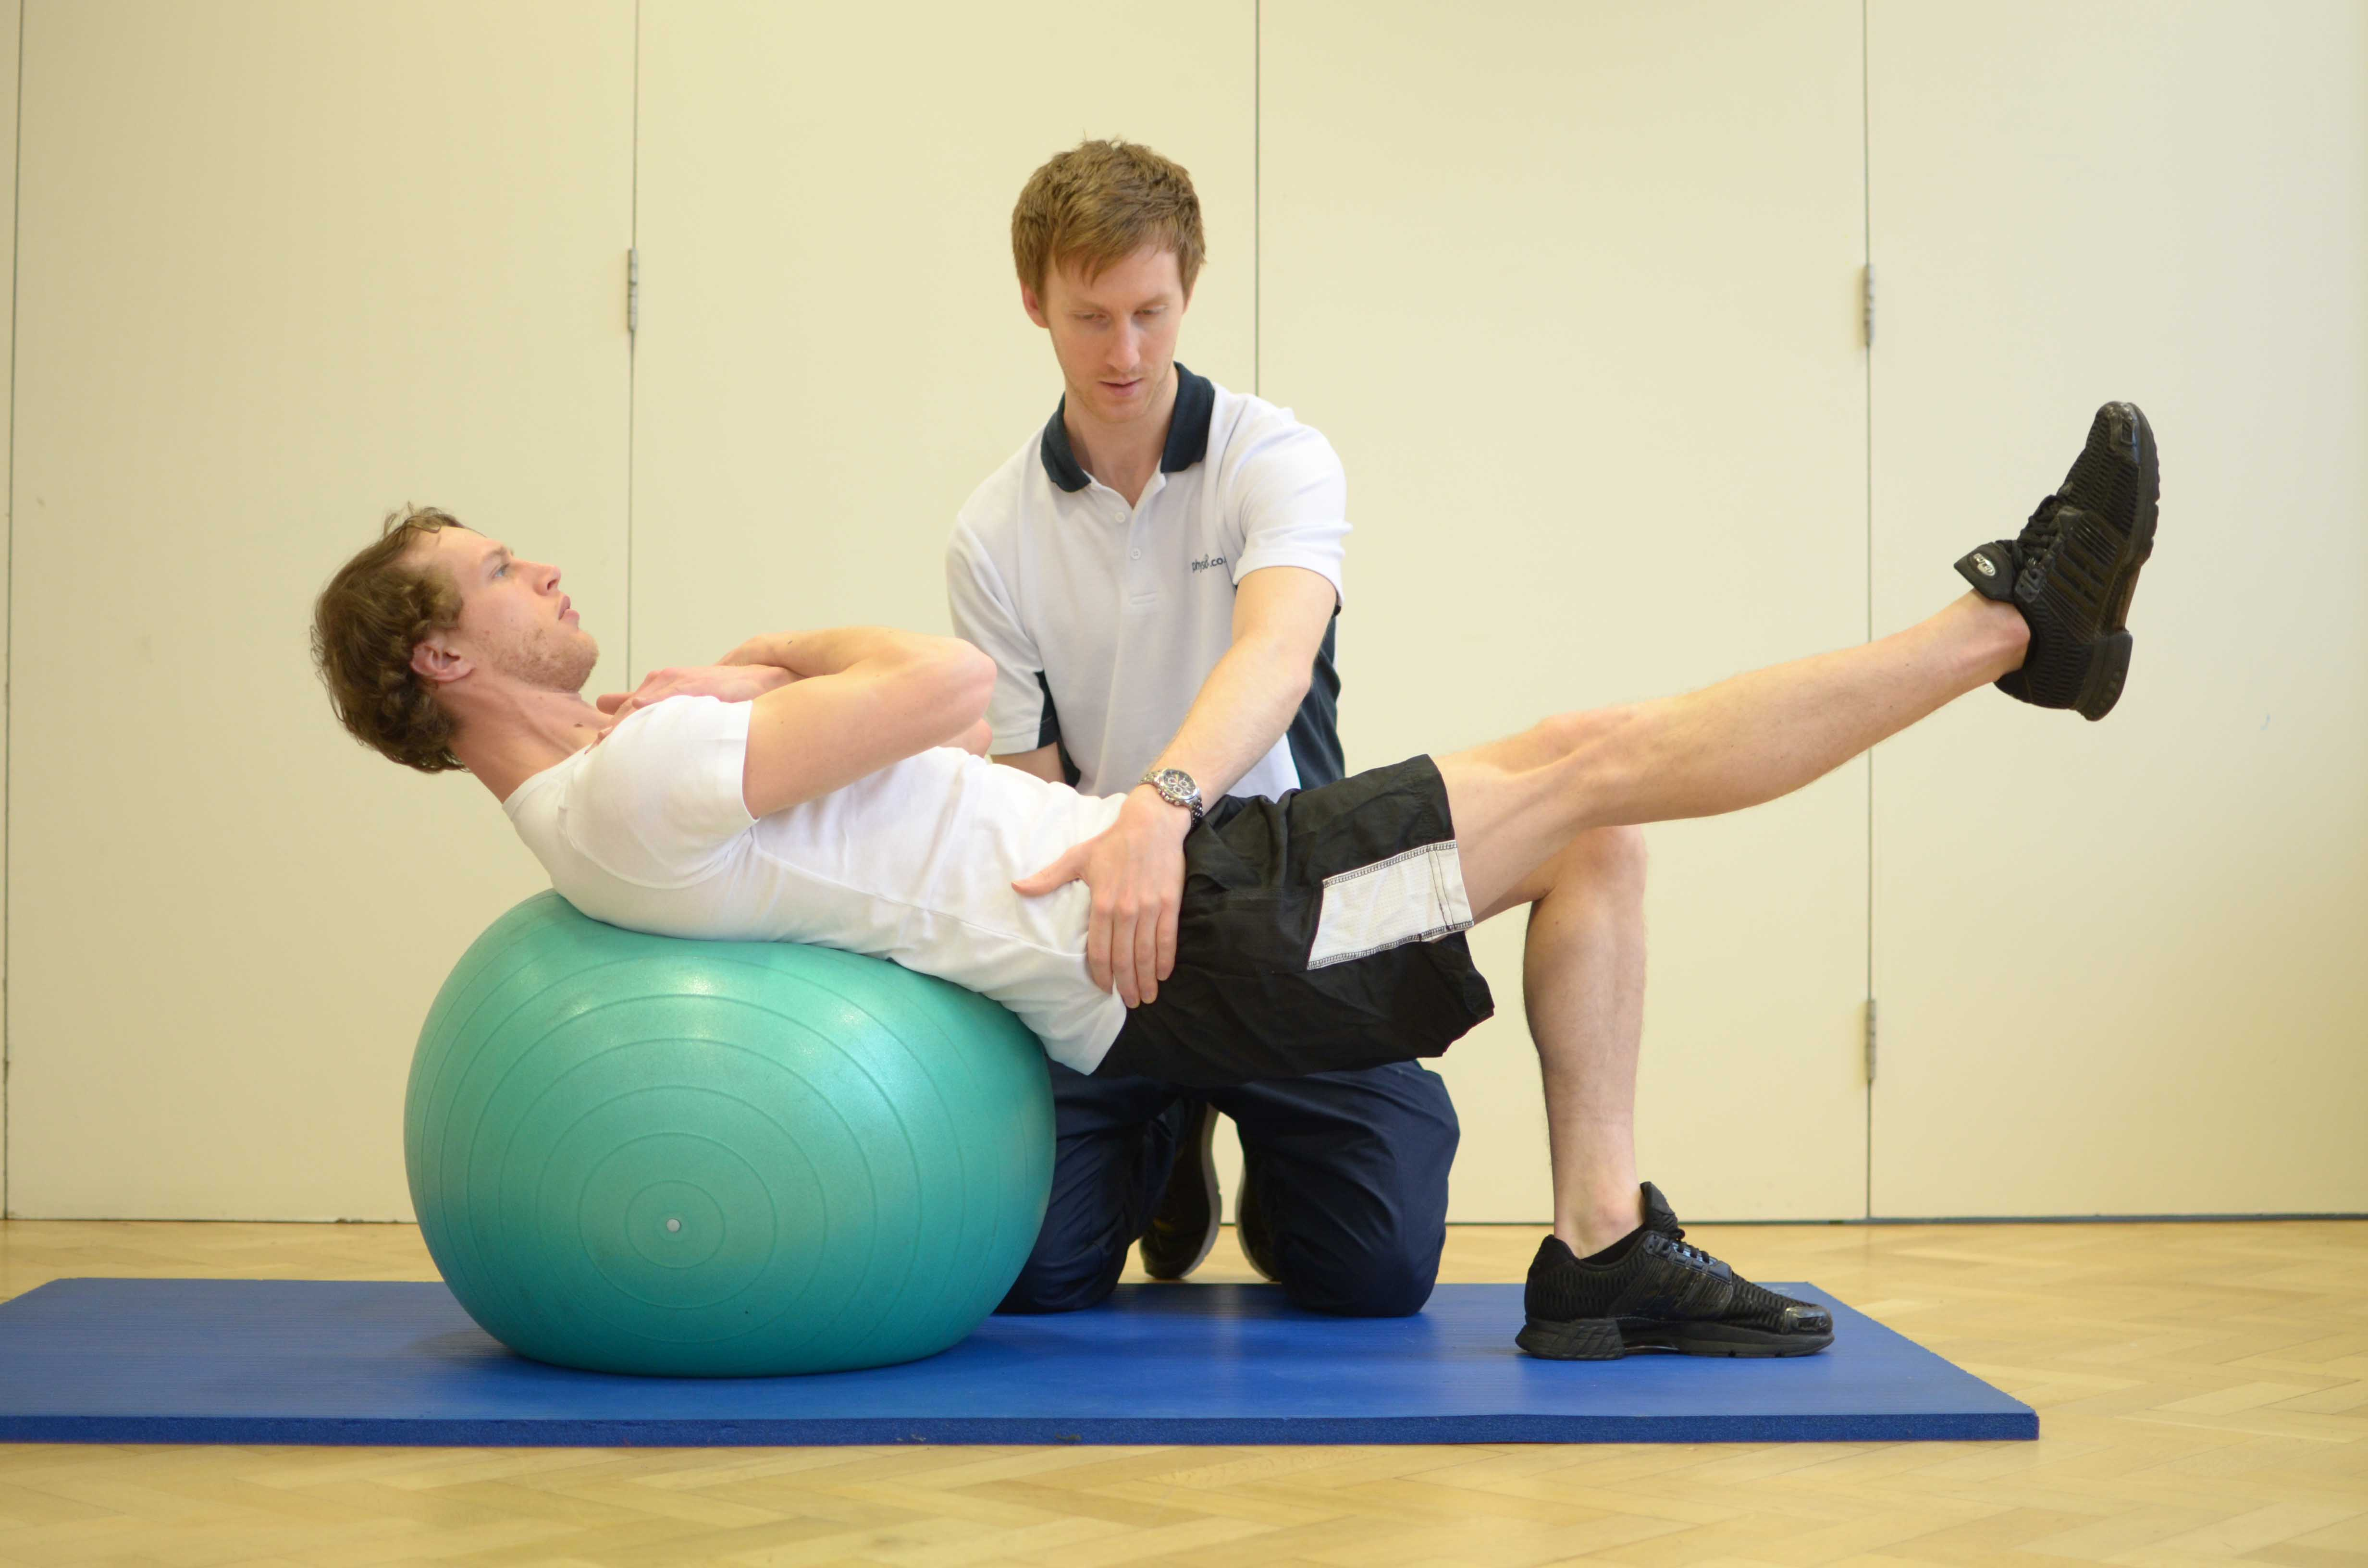 Passive stretch applied by physiotherapist to calf and hamstring muscles